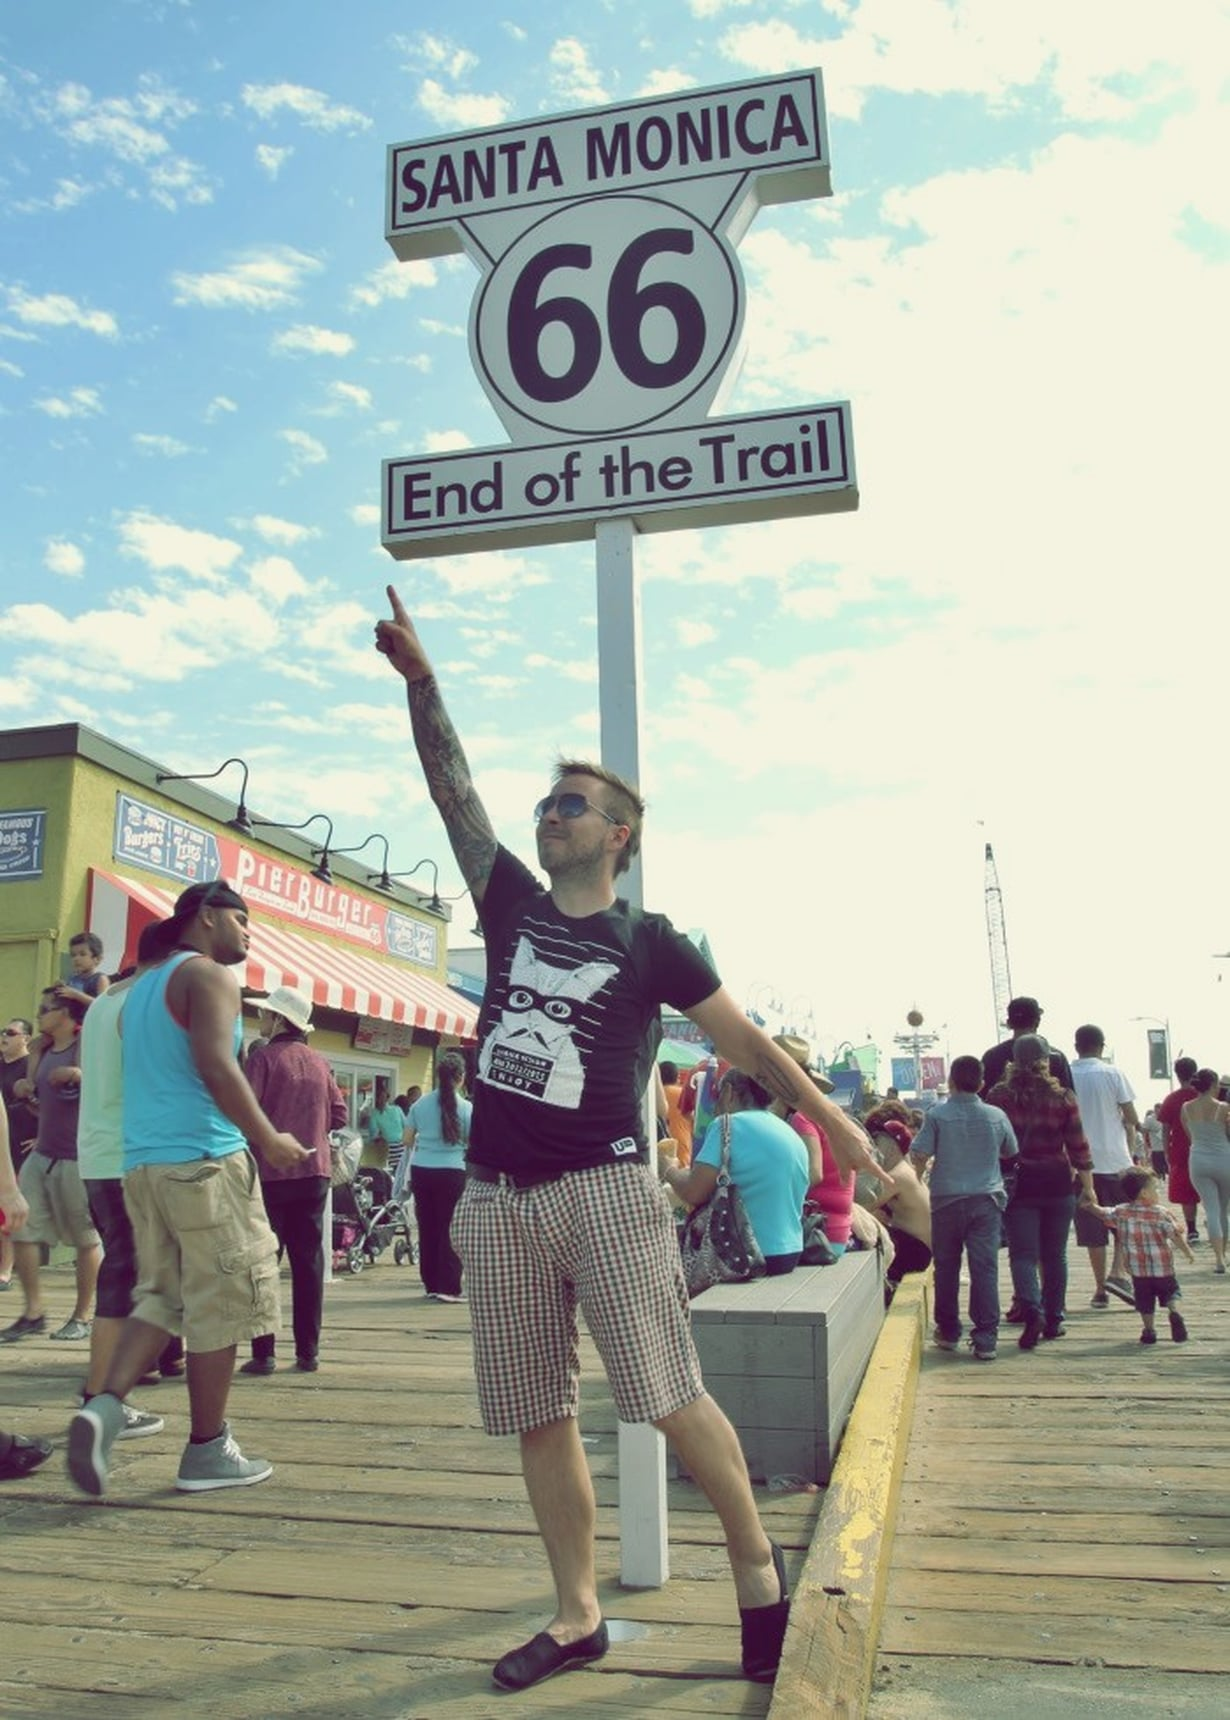 46route66